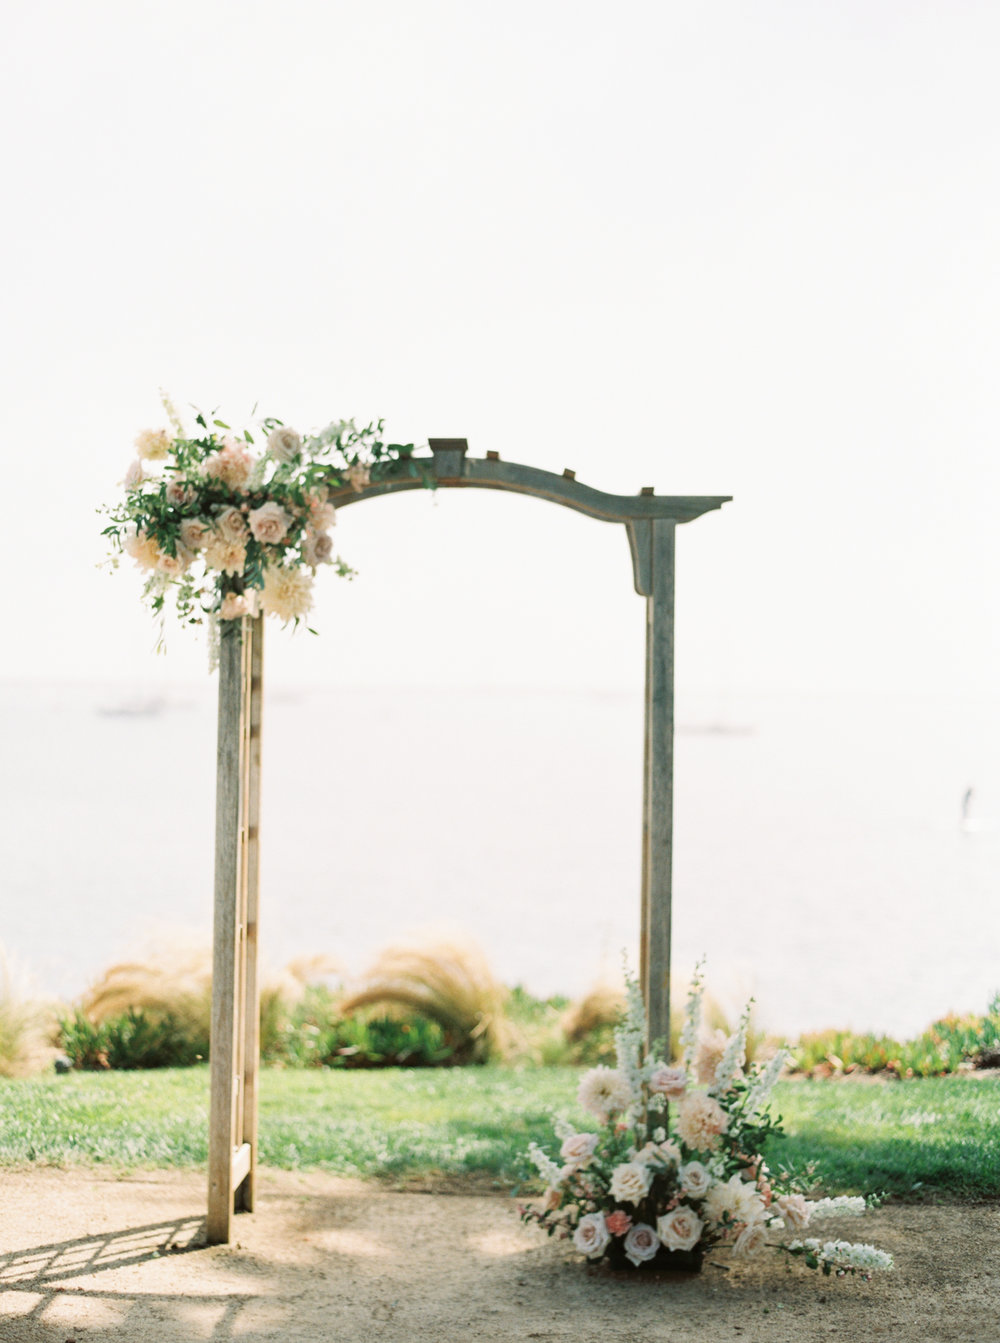 trynhphoto_socal_sf_halfmoon_bay_wedding_photographer_JA-264.jpg